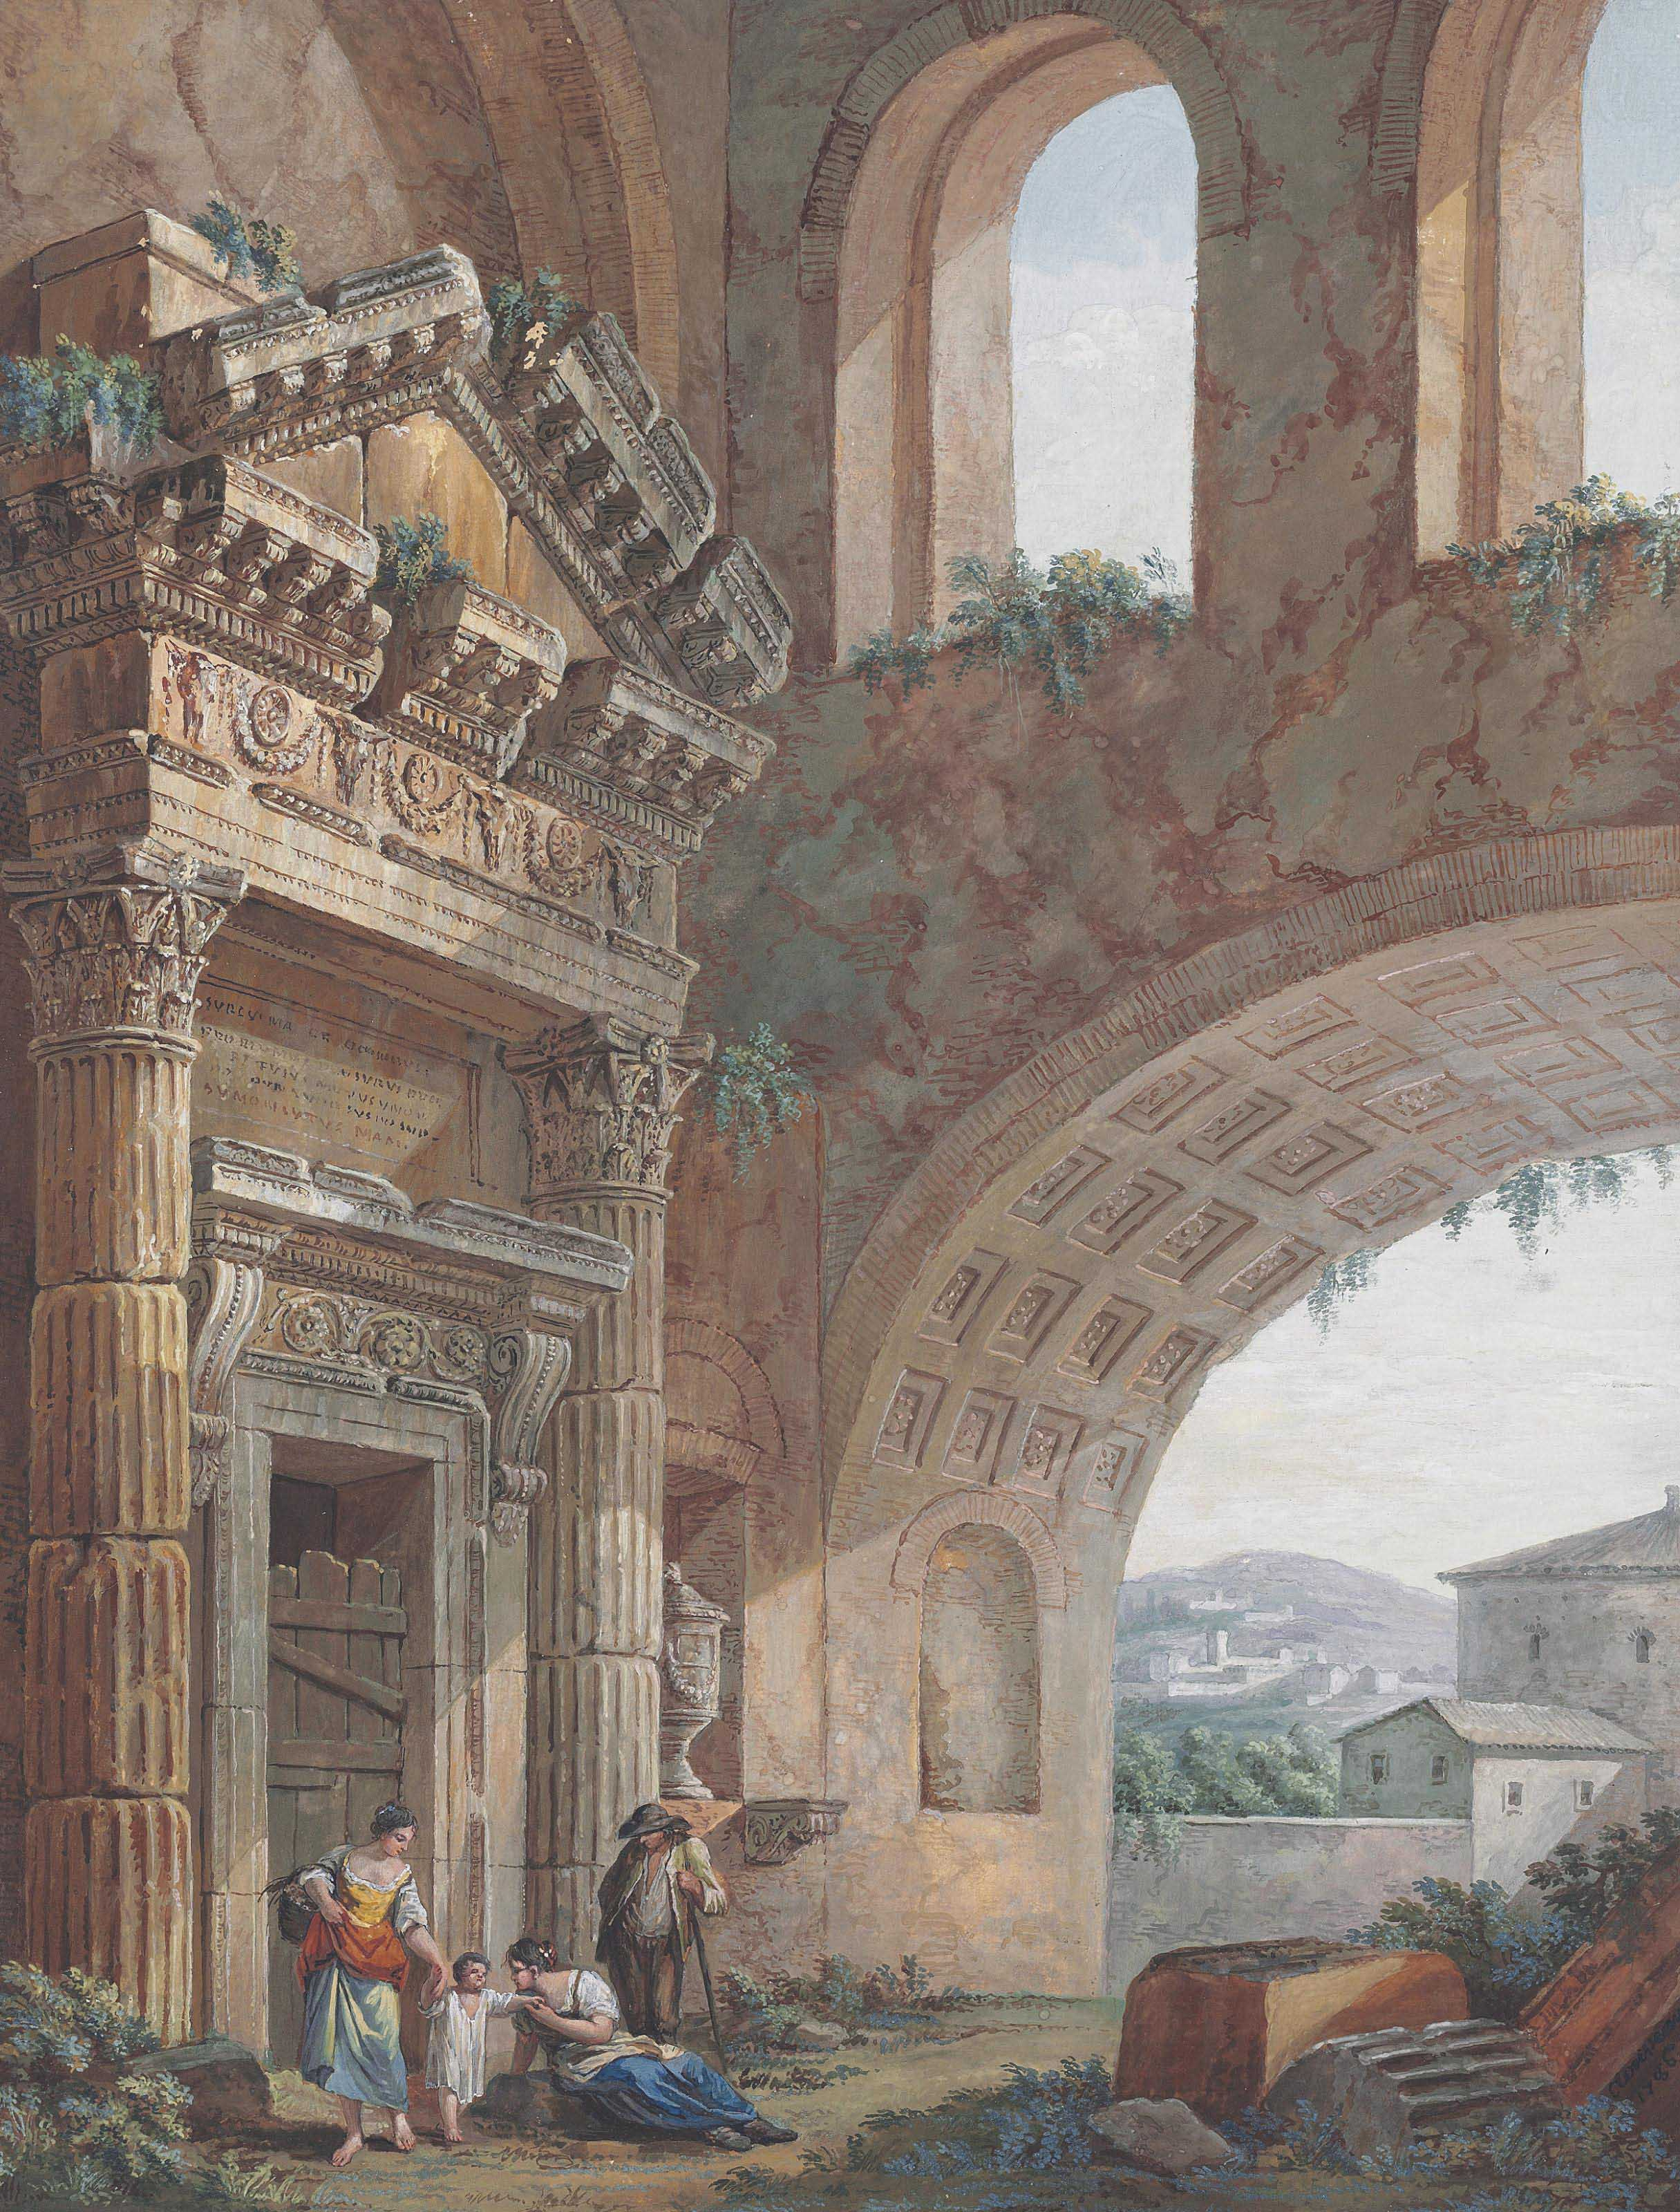 A classical capriccio with figures by a great arch